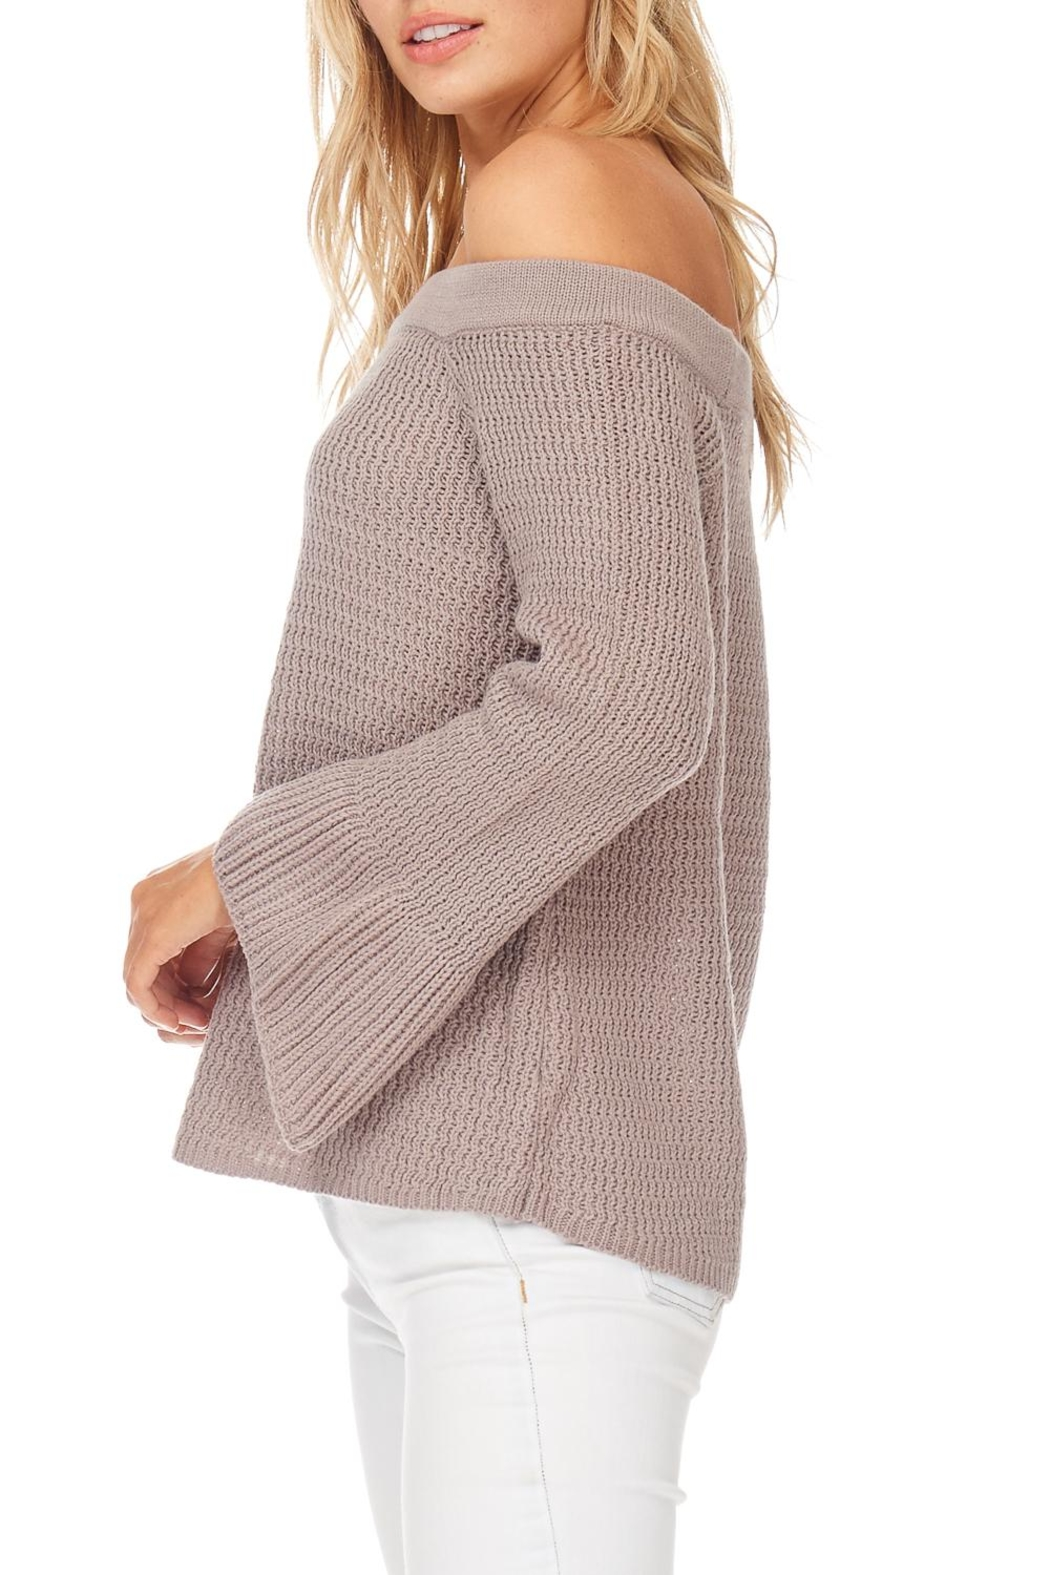 LoveRiche Taupe Off Shoulder Sweater - Side Cropped Image